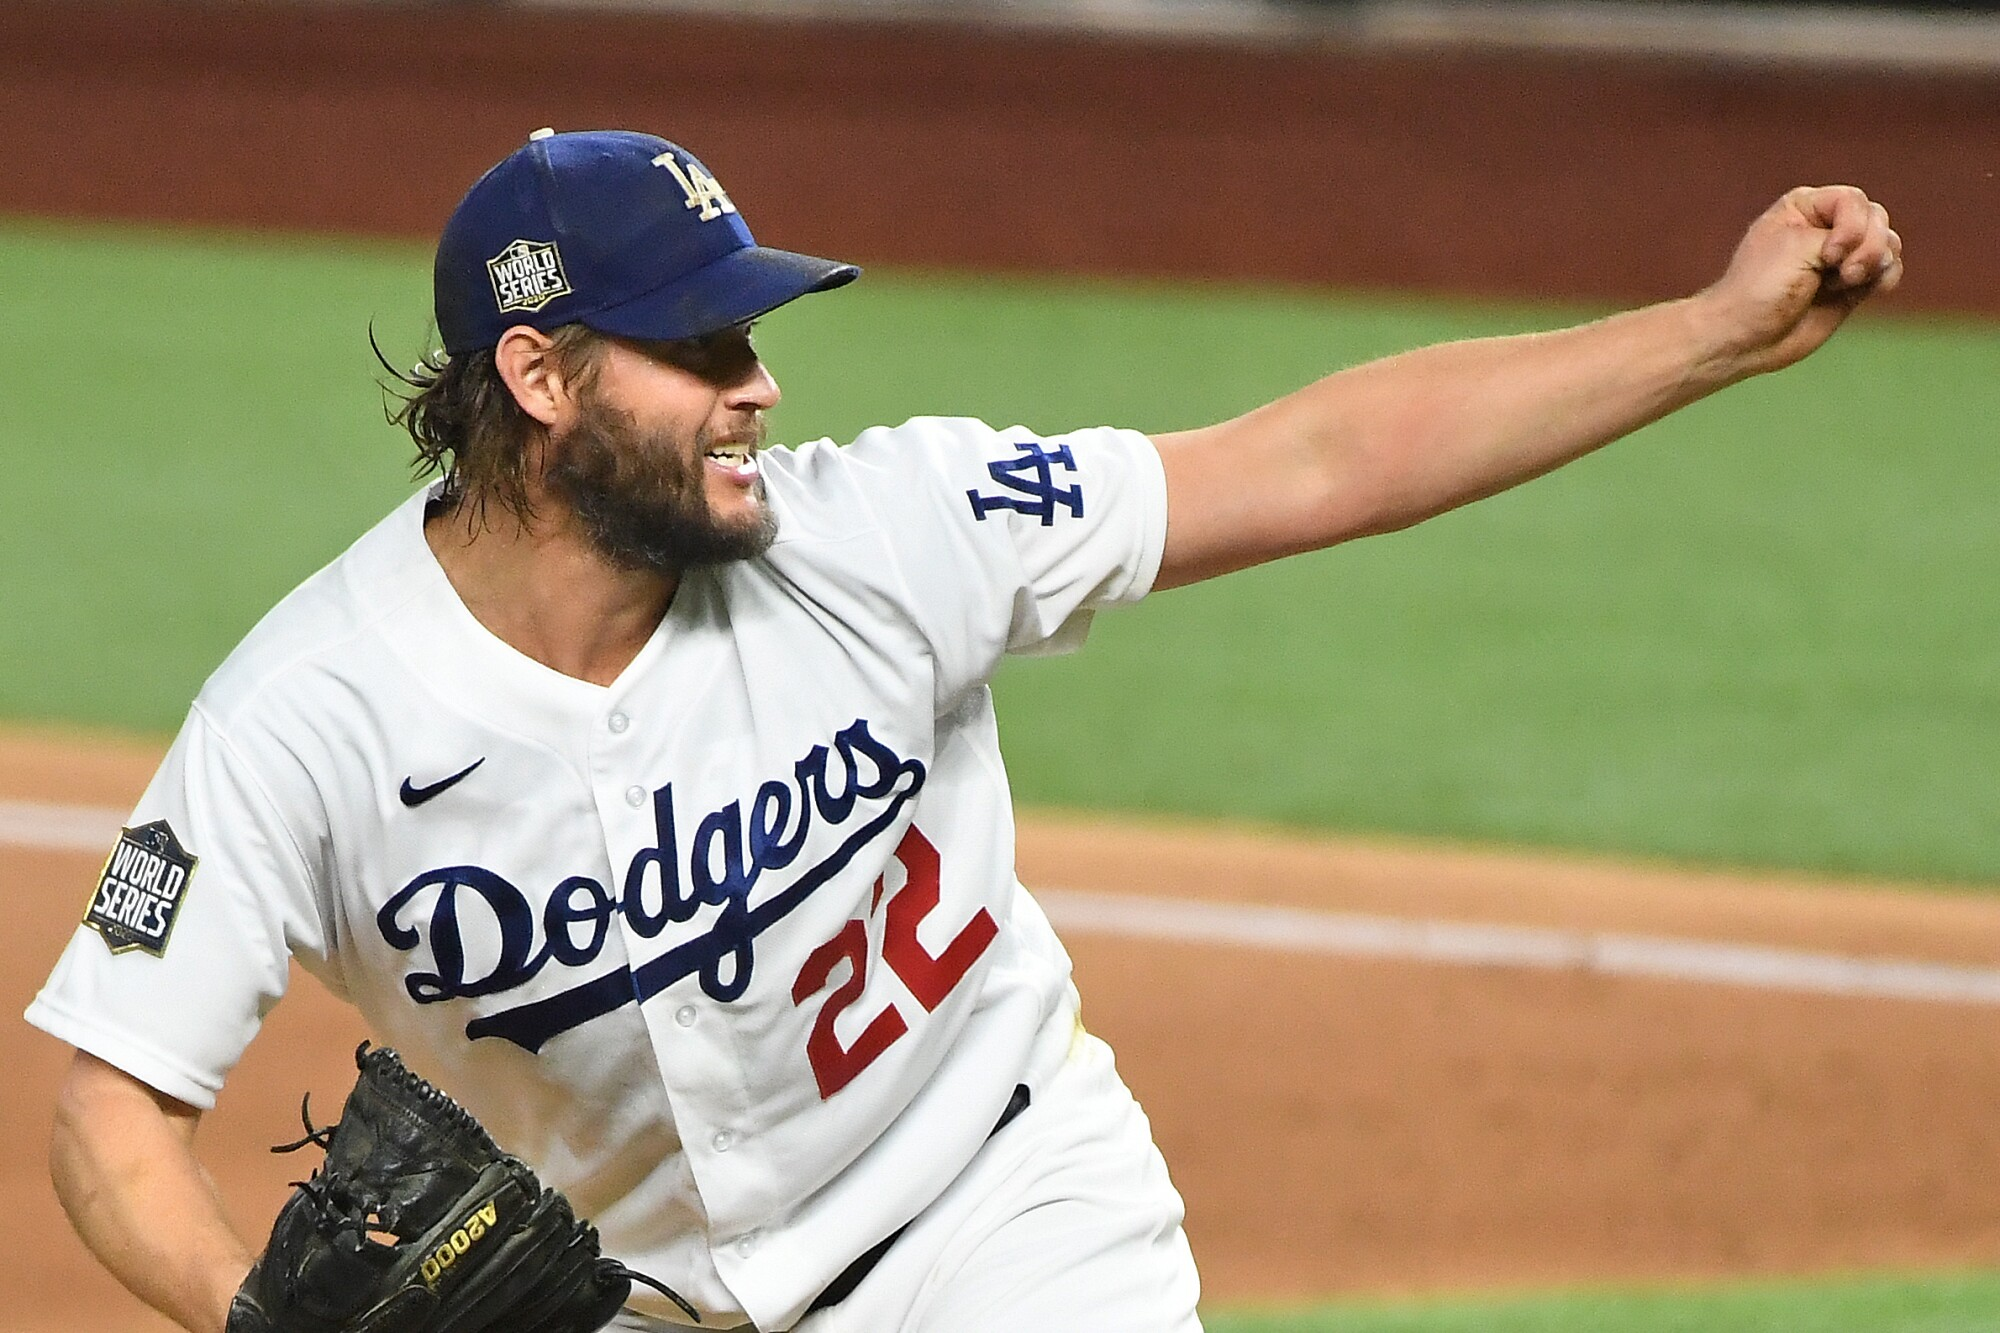 Dodgers starting pitcher Clayton Kershaw delivers during the third inning of an 8-3 win over the Rays.